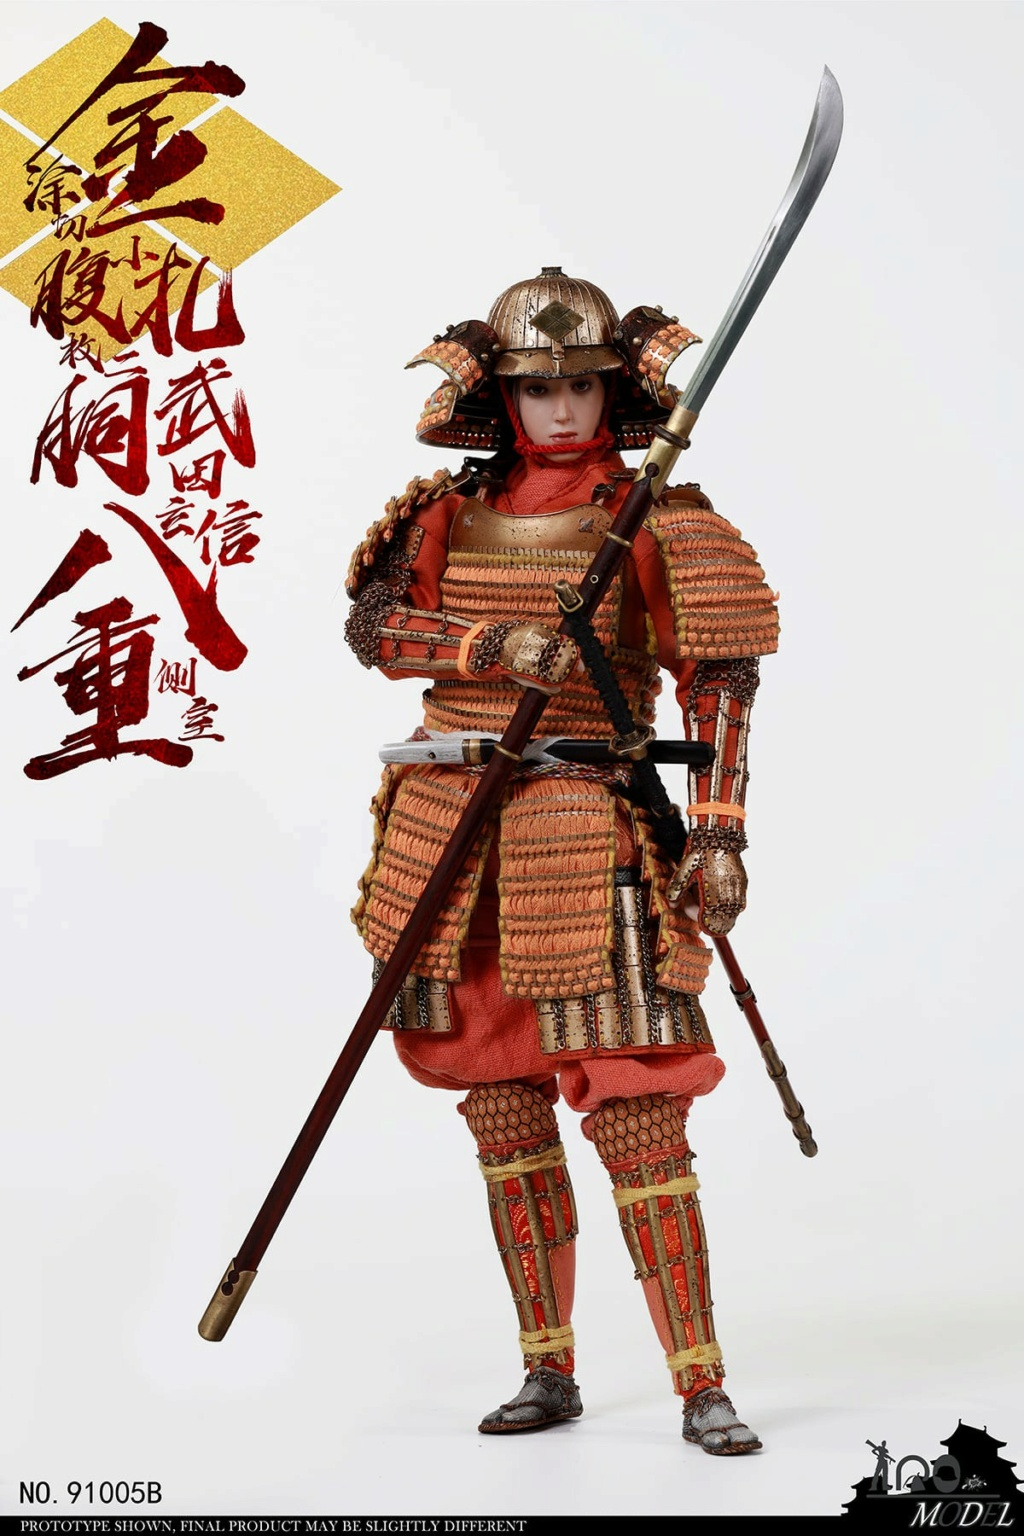 IQOModel - NEW PRODUCT: IQOMODEL: 1/6 [100% full copper] Takeda Shingen's side room with eight heavy gold-coated cuts and two small pieces of carcass NO.91005A/B  16295910